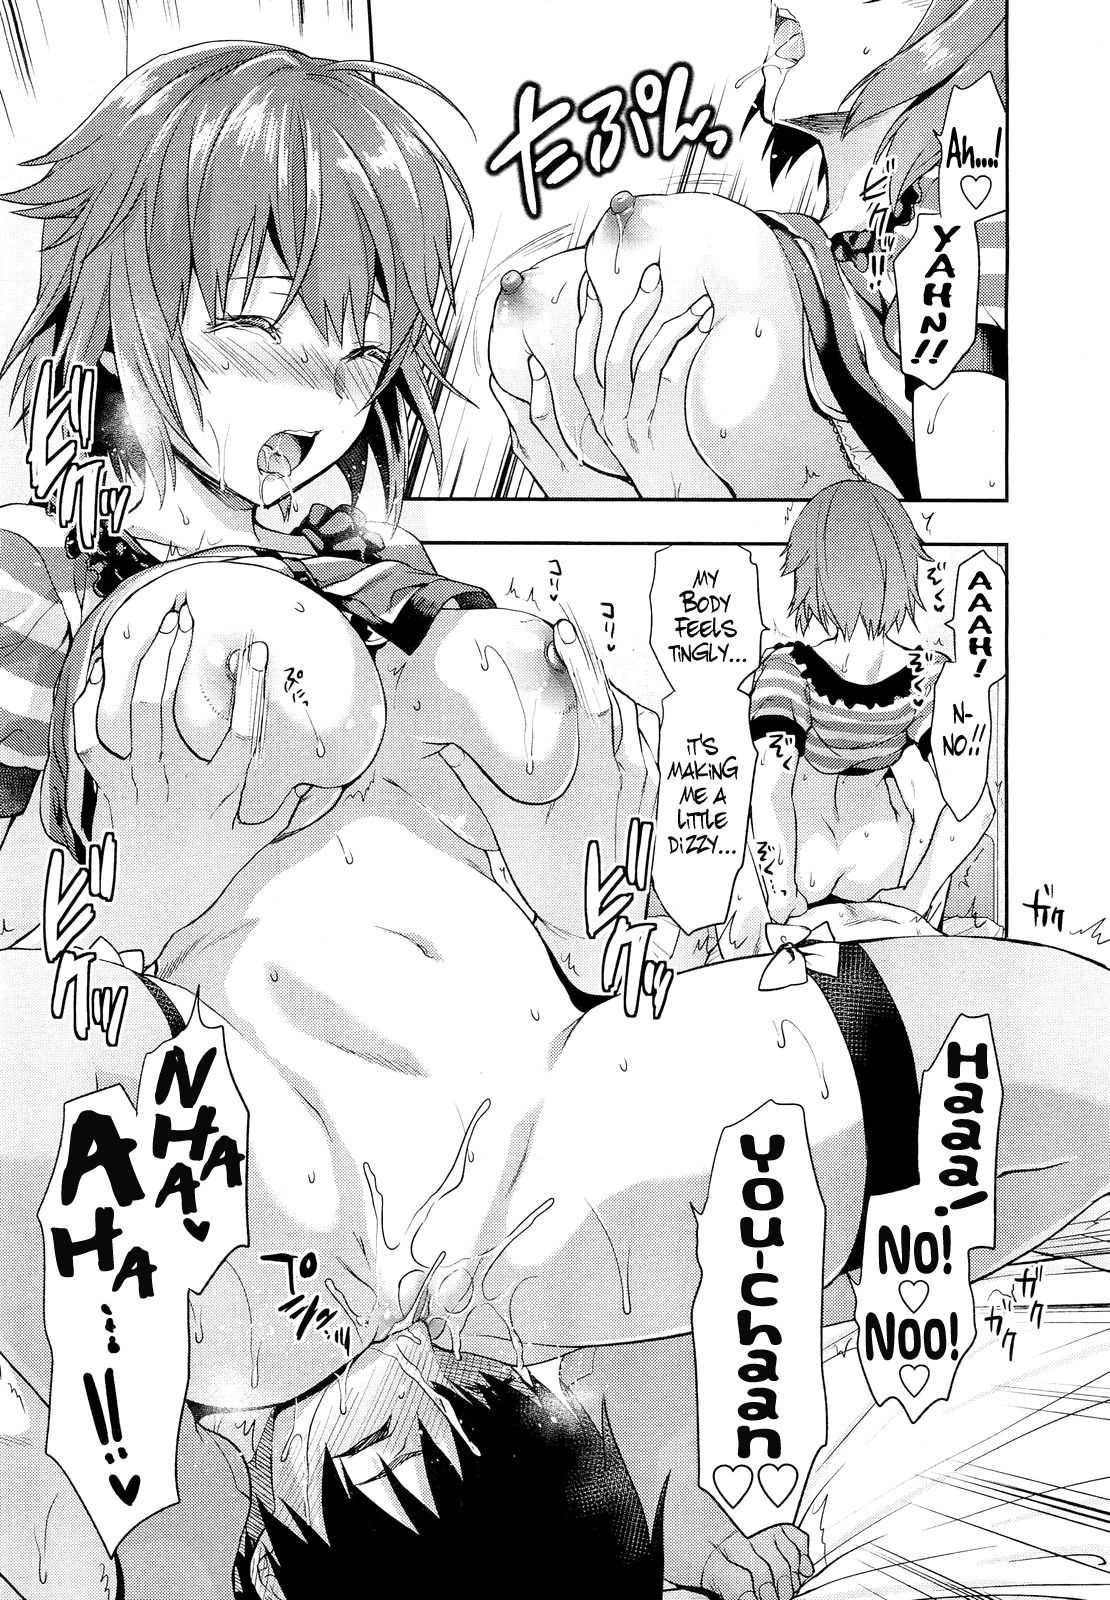 Hentai Chubby for page 31 | chubby sister (original) - chapter 1: chubby sister 1